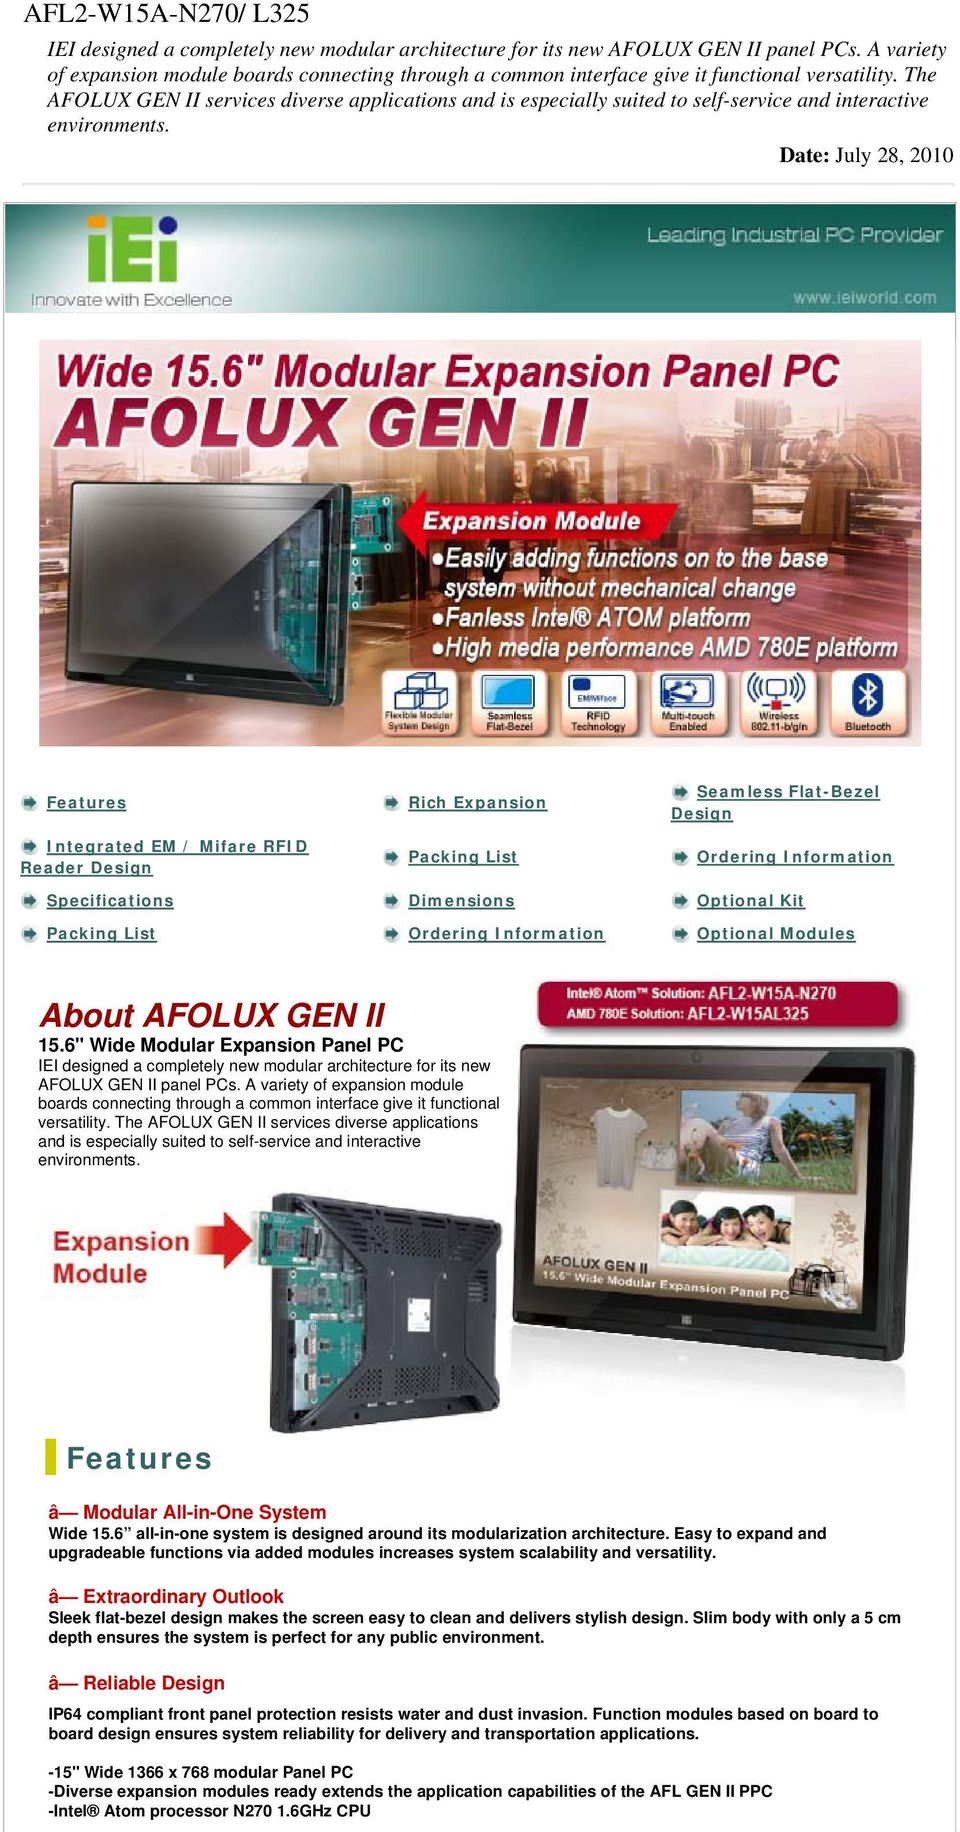 The AFOLUX GEN II services diverse applications and is especially suited to self-service and interactive environments.